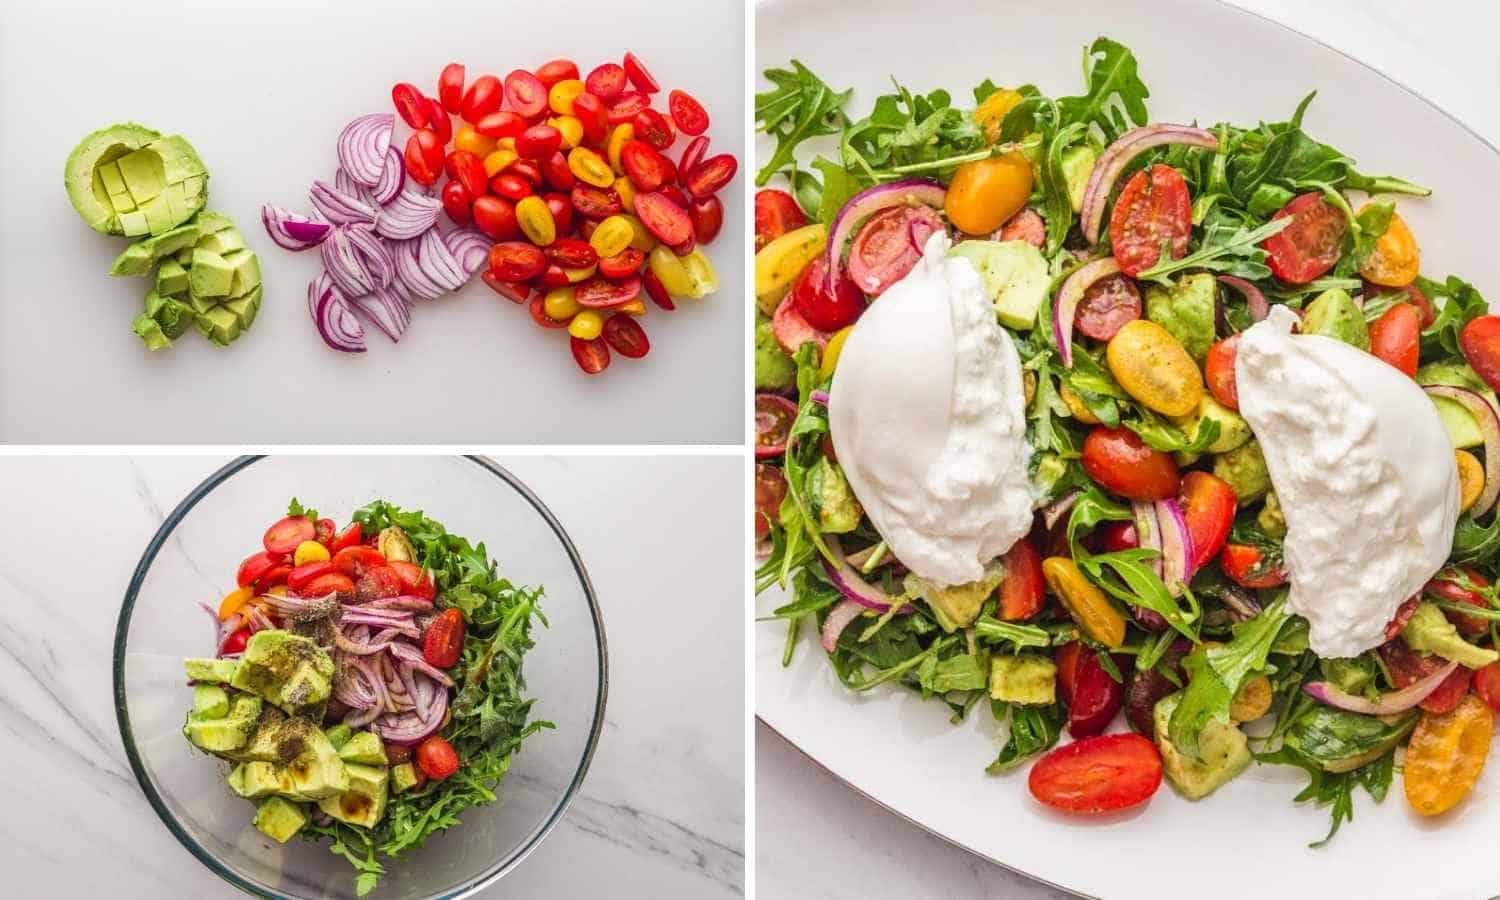 How to Make Burrata Salad shown in 3 images in a collage